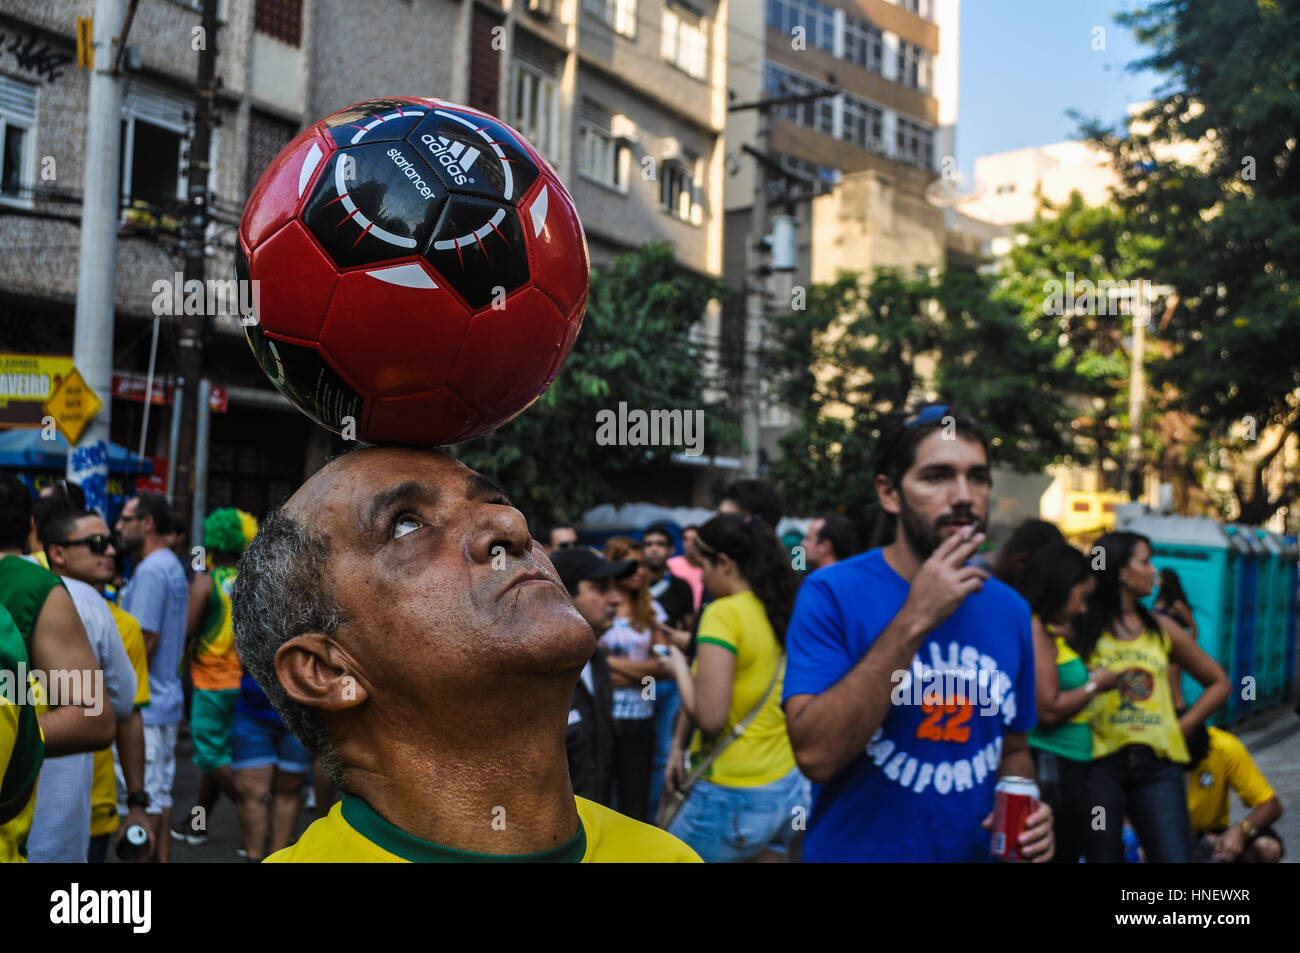 Spectators awaiting a Brazil game during the 2014 World Cup Stock Photo